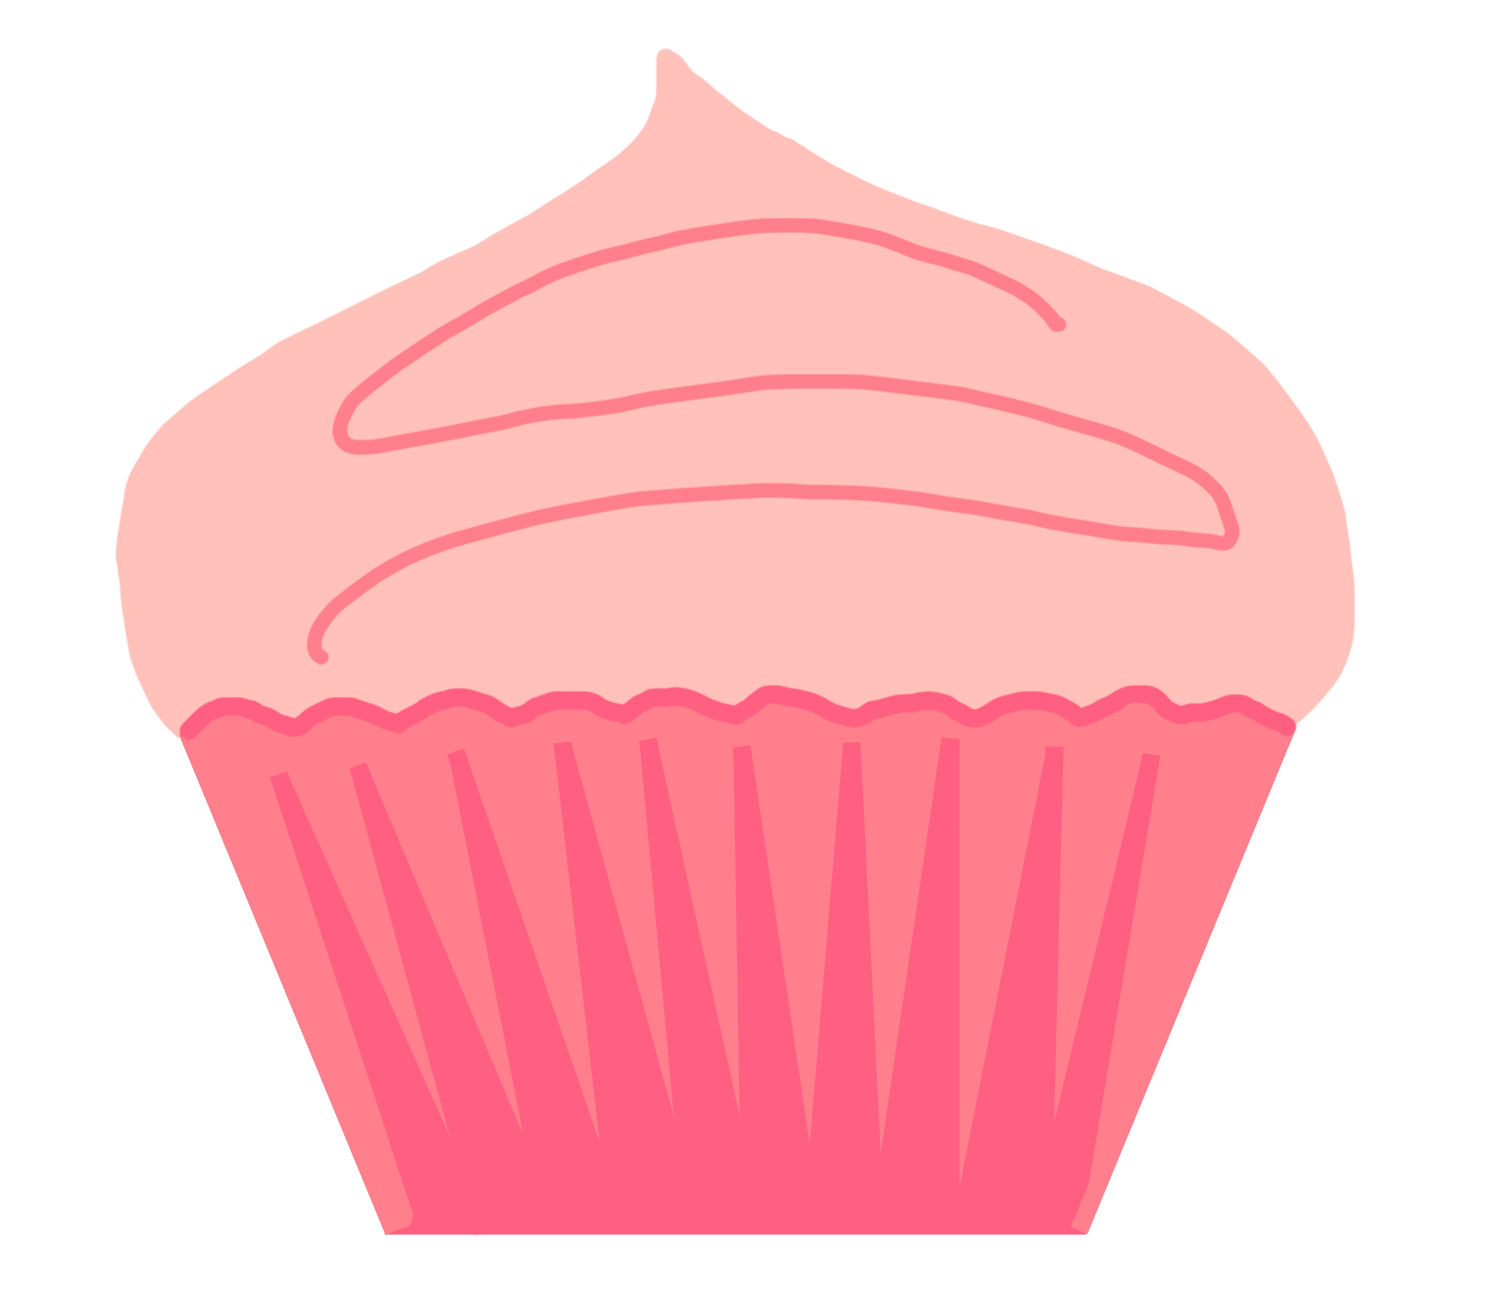 cupcakes clip art pictures clipart panda free clipart images rh clipartpanda com clip art of pancakes clip art of pancakes